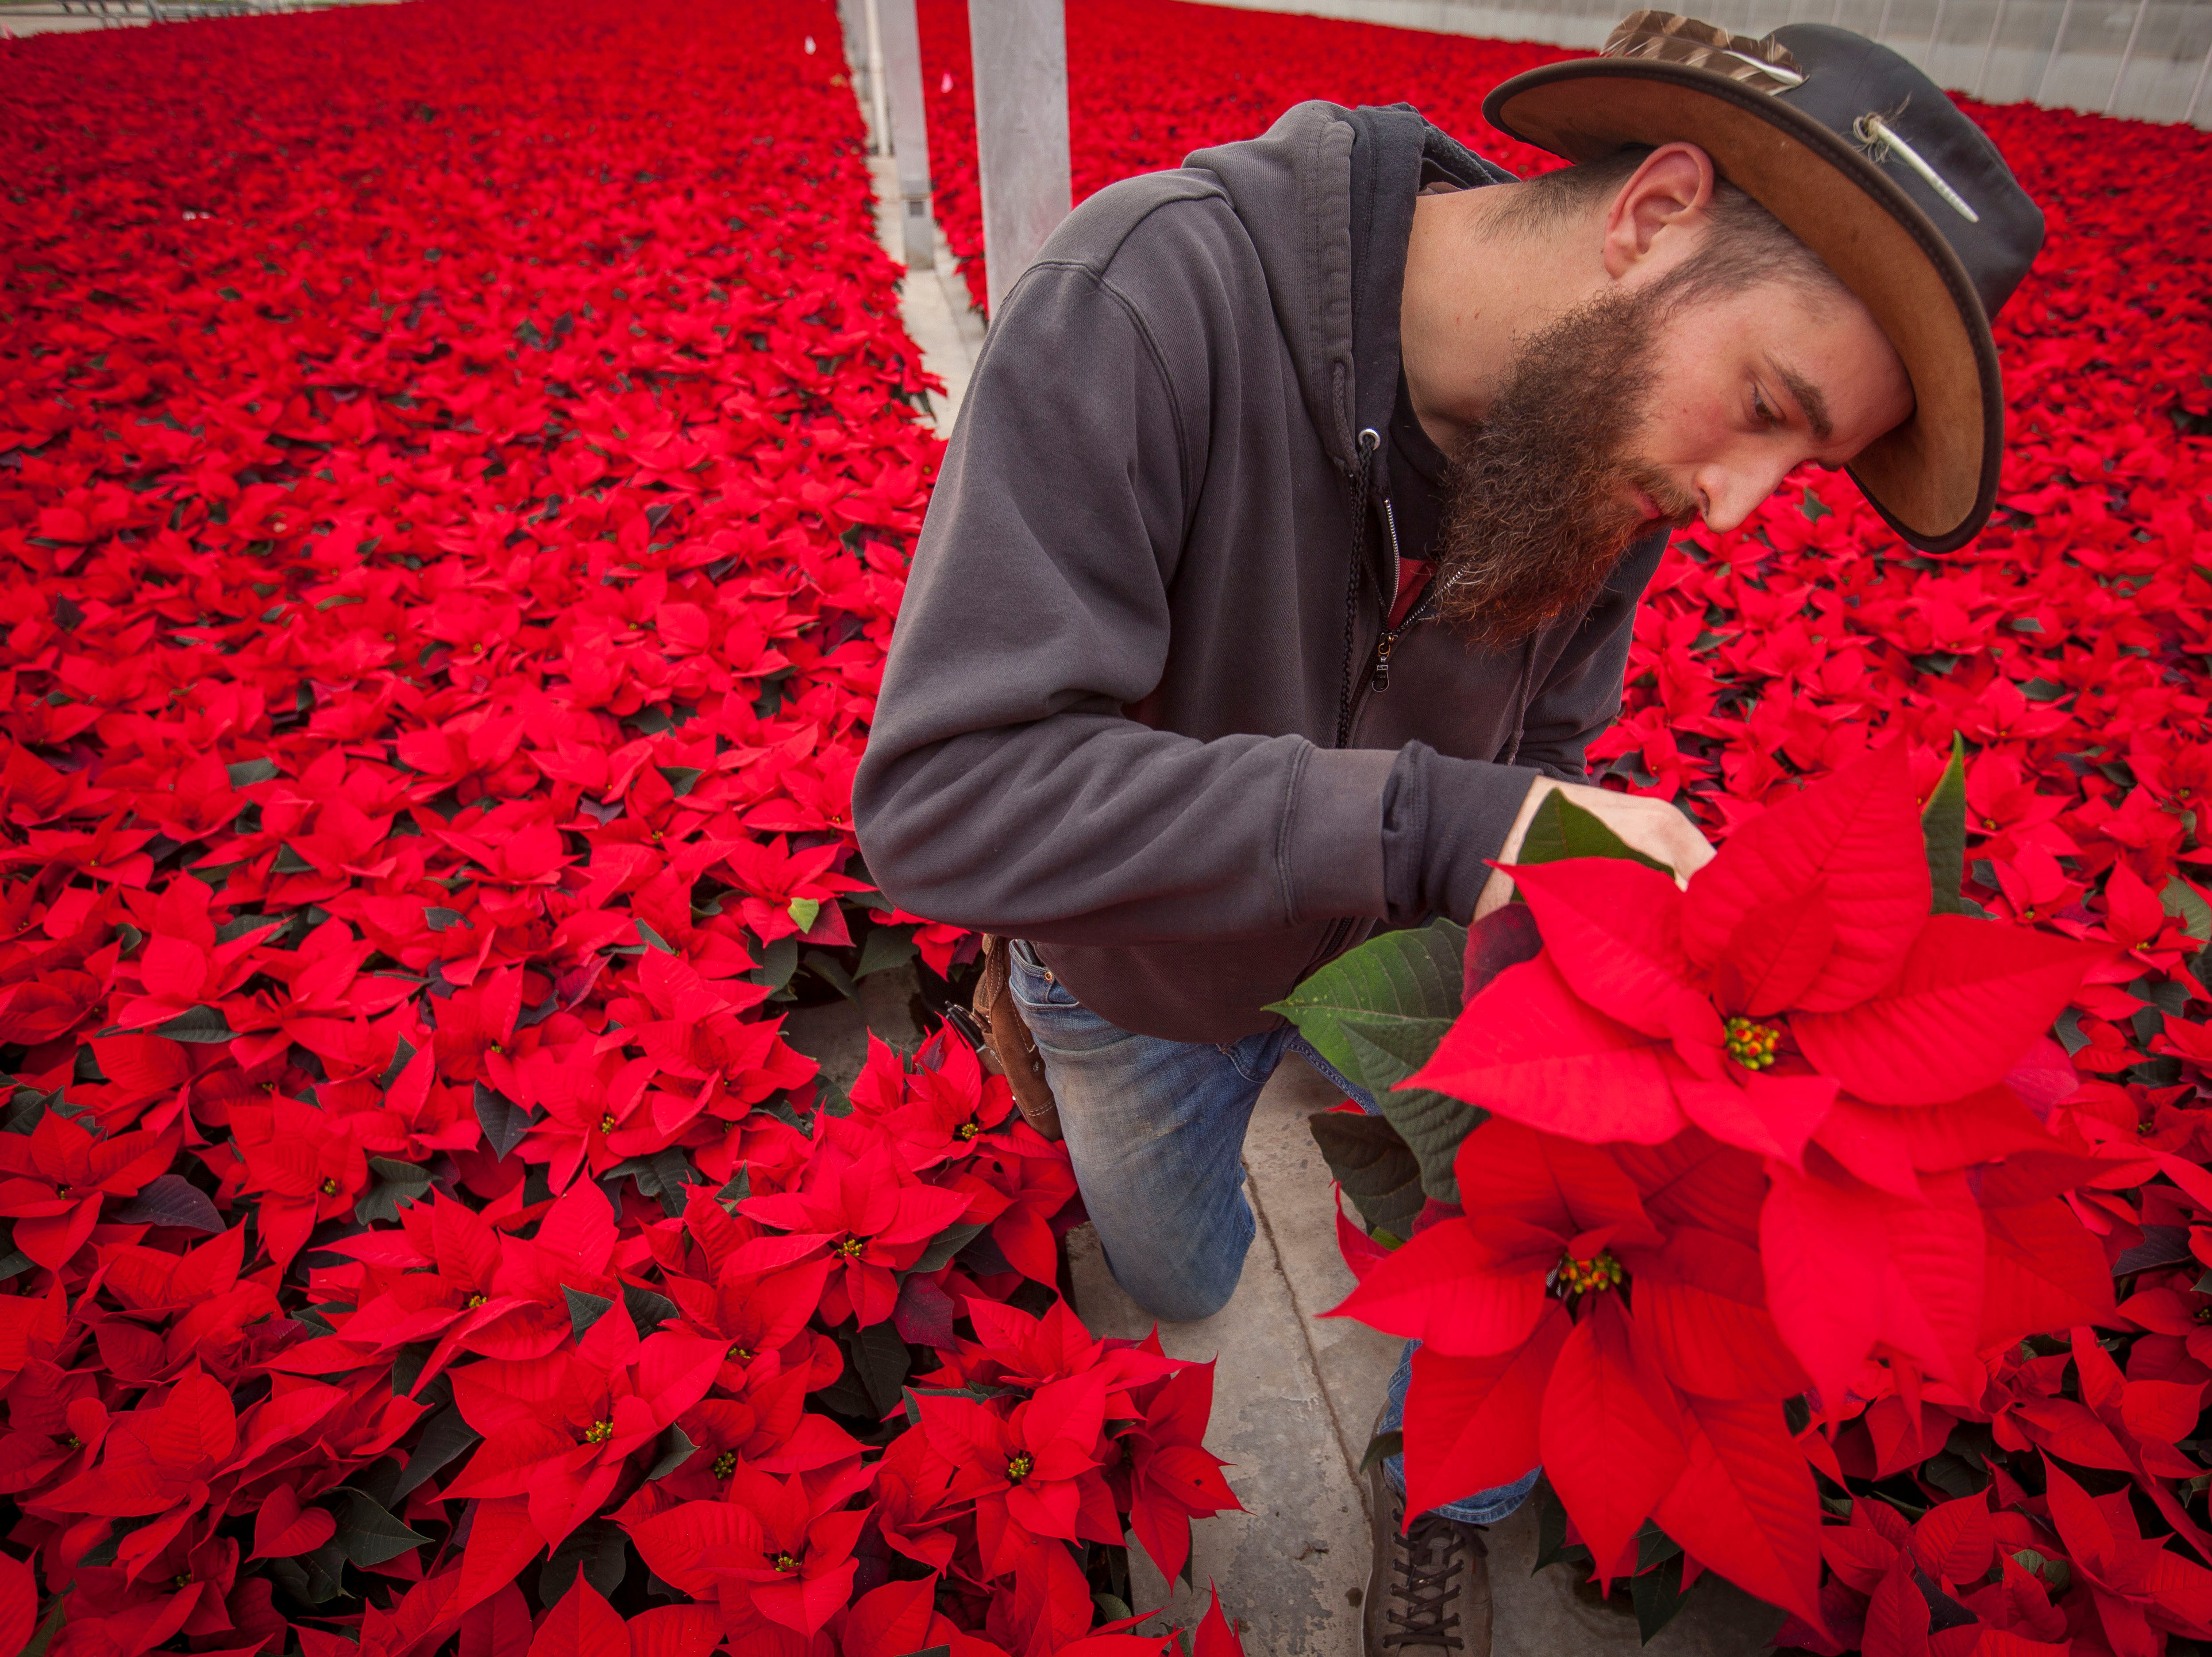 John Cunliffe, assistant head grower at Smith Gardens in Aurora, Oregon, inspects a 1.5 quart red poinsettia plant for the whitefly, a common poinsettia pest Friday November 30, 2018. Smith Gardens uses a biological approach to handling the insect by introducing beneficial predatory insects to fight the flies and reduce the need for pesticides. Cunliffe is inspecting the plants before they are packaged for one of the last shipments of the year in early December. The plants go to local big box stores.